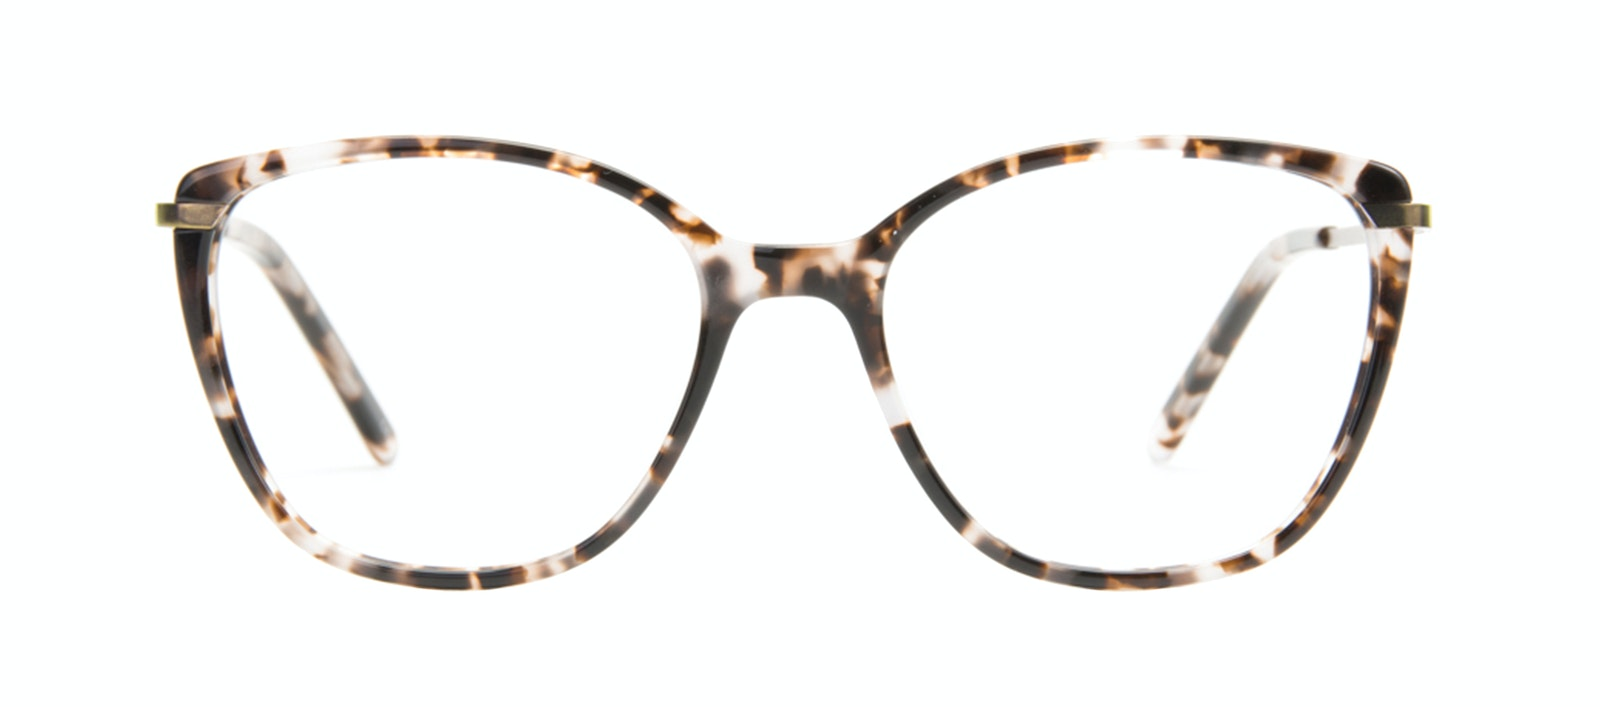 Affordable Fashion Glasses Cat Eye Rectangle Square Eyeglasses Women Illusion Sand Front